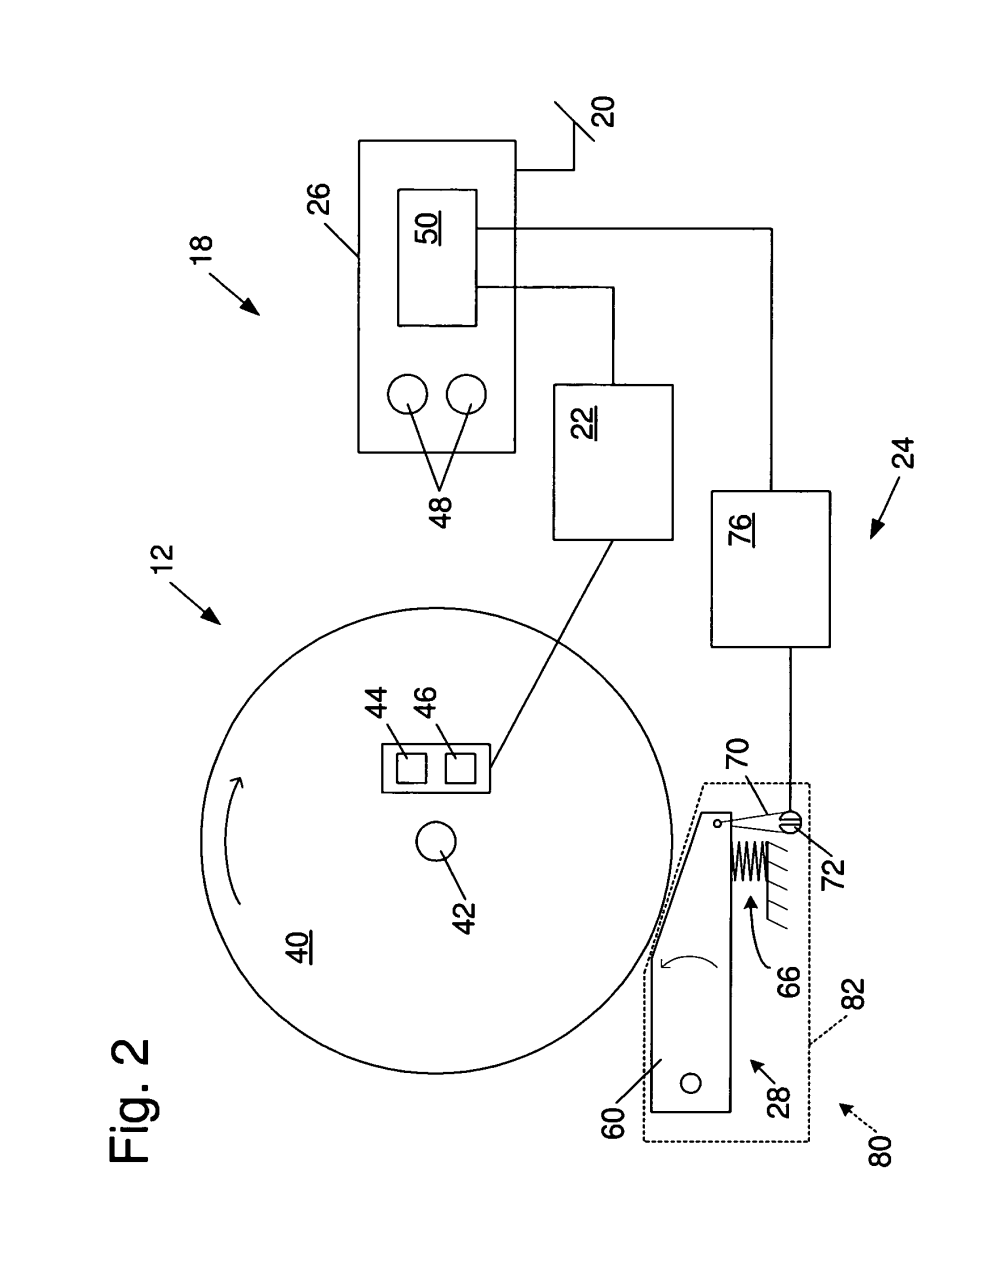 medium resolution of us08505424 20130813 d00002 patent us8505424 table saws with safety systems and systems to table saw switch wiring diagram 31 wiring diagram